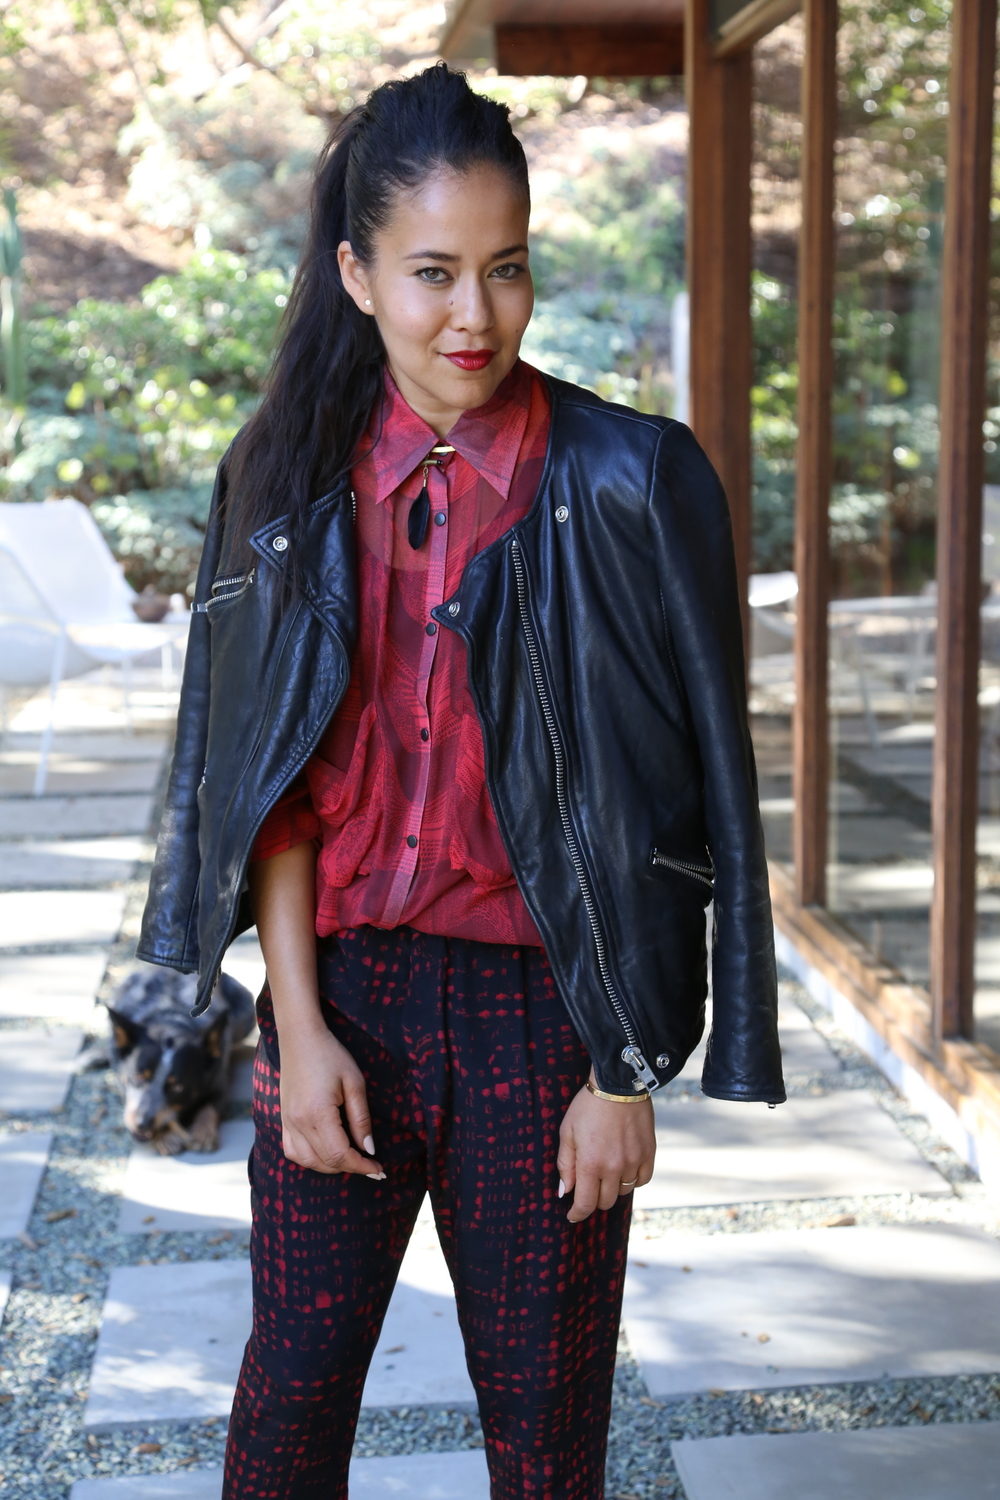 isabel-marant-moto-lether-jacket-red-print-pants-los-angeles.jpg